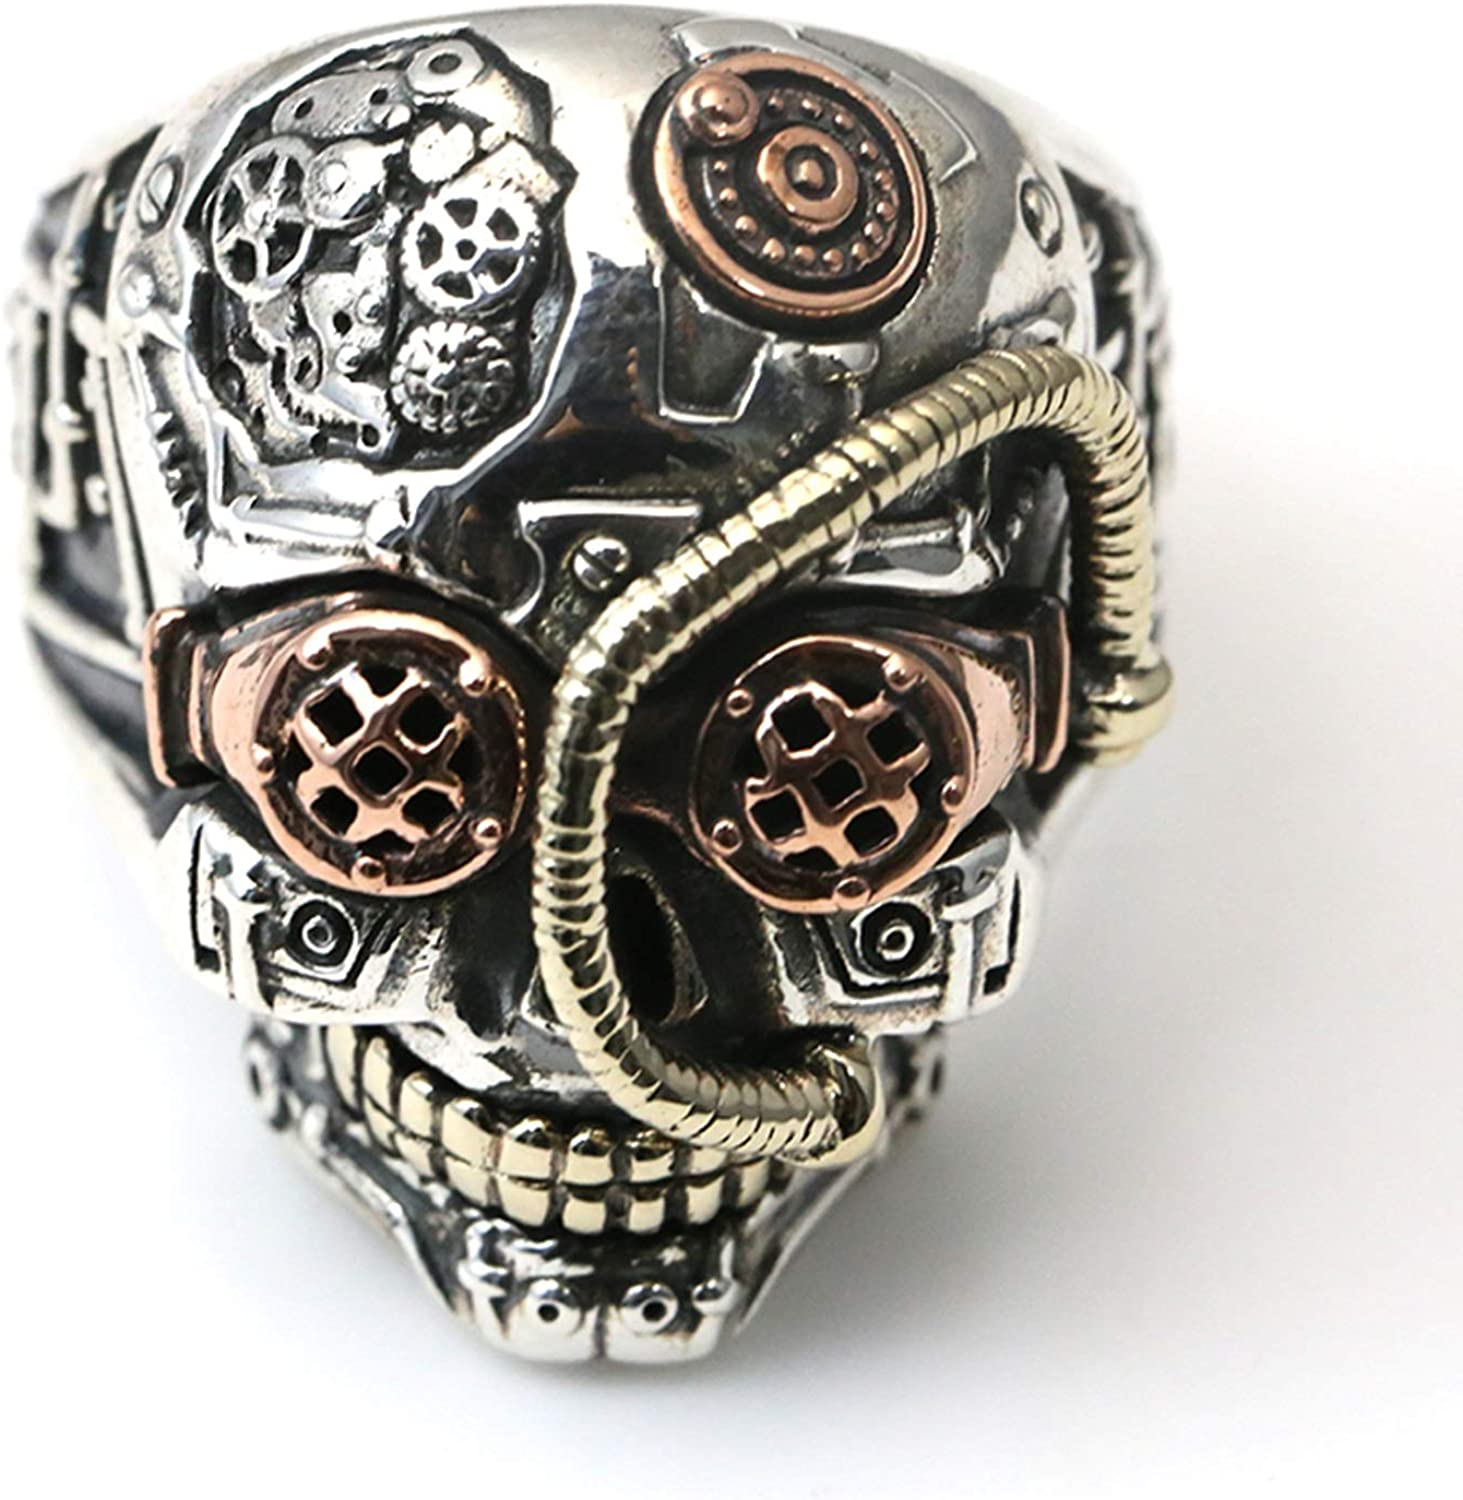 Epinki 925 Sterling Silver Gothic Skull Ring for Men Retro Gothic Punk Style Jewelry